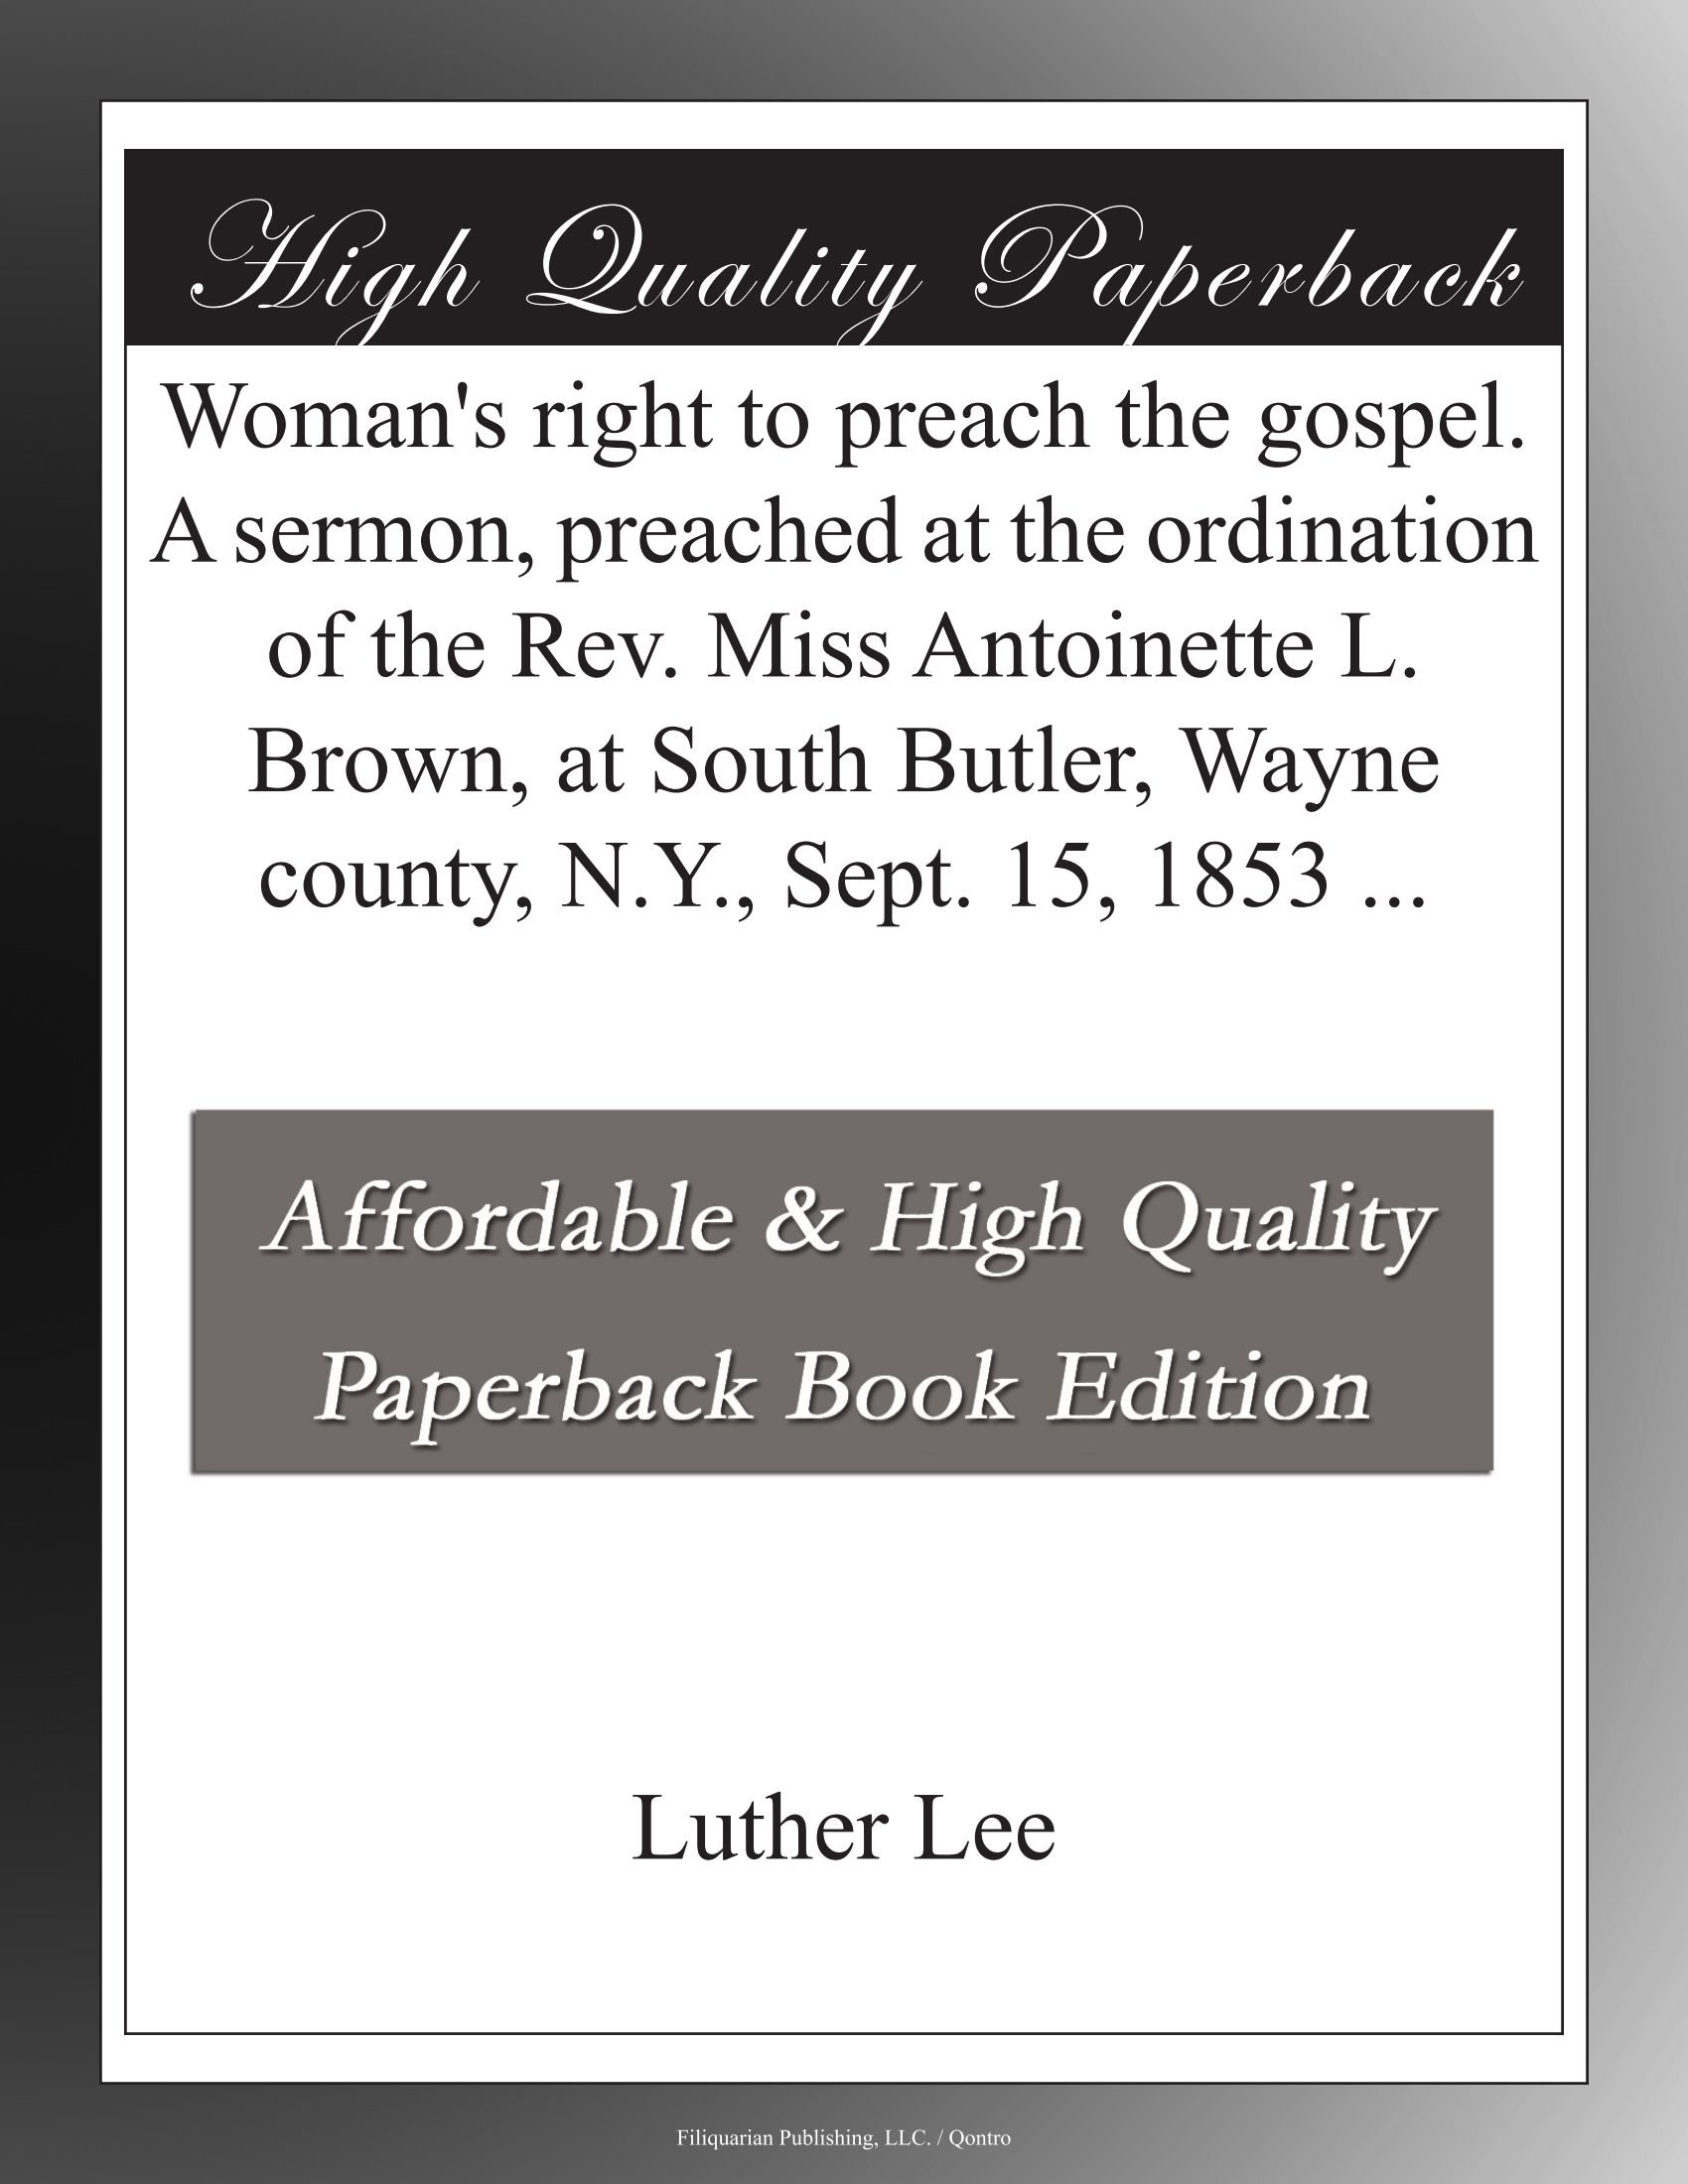 Download Woman's right to preach the gospel. A sermon, preached at the ordination of the Rev. Miss Antoinette L. Brown, at South Butler, Wayne county, N.Y, Sept. 15, 1853 PDF